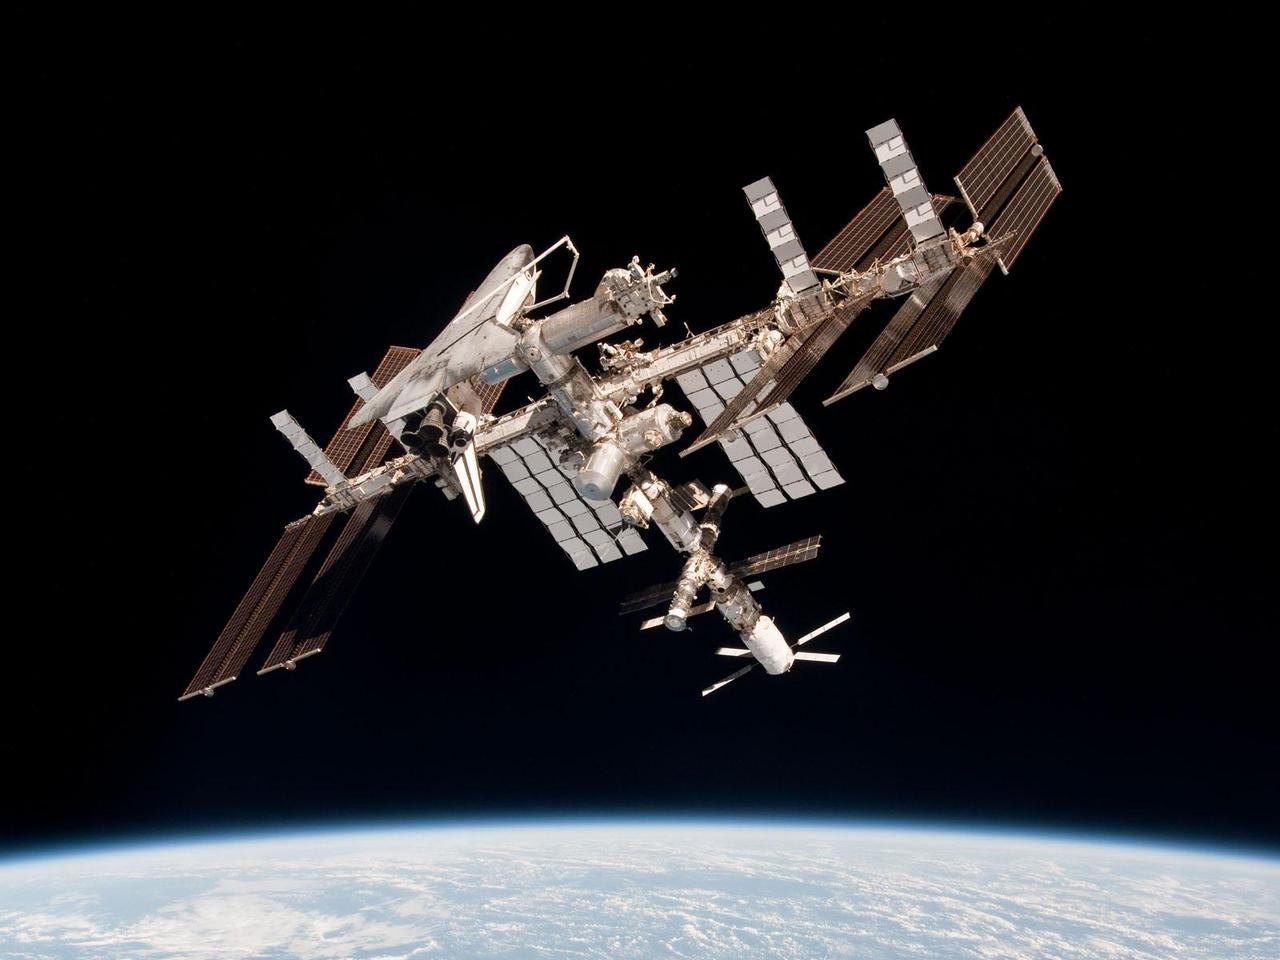 Image of the ISS captured in 2011, docked with ATV-2 and the Endeavour space shuttle (Photo: ESA/NASA)